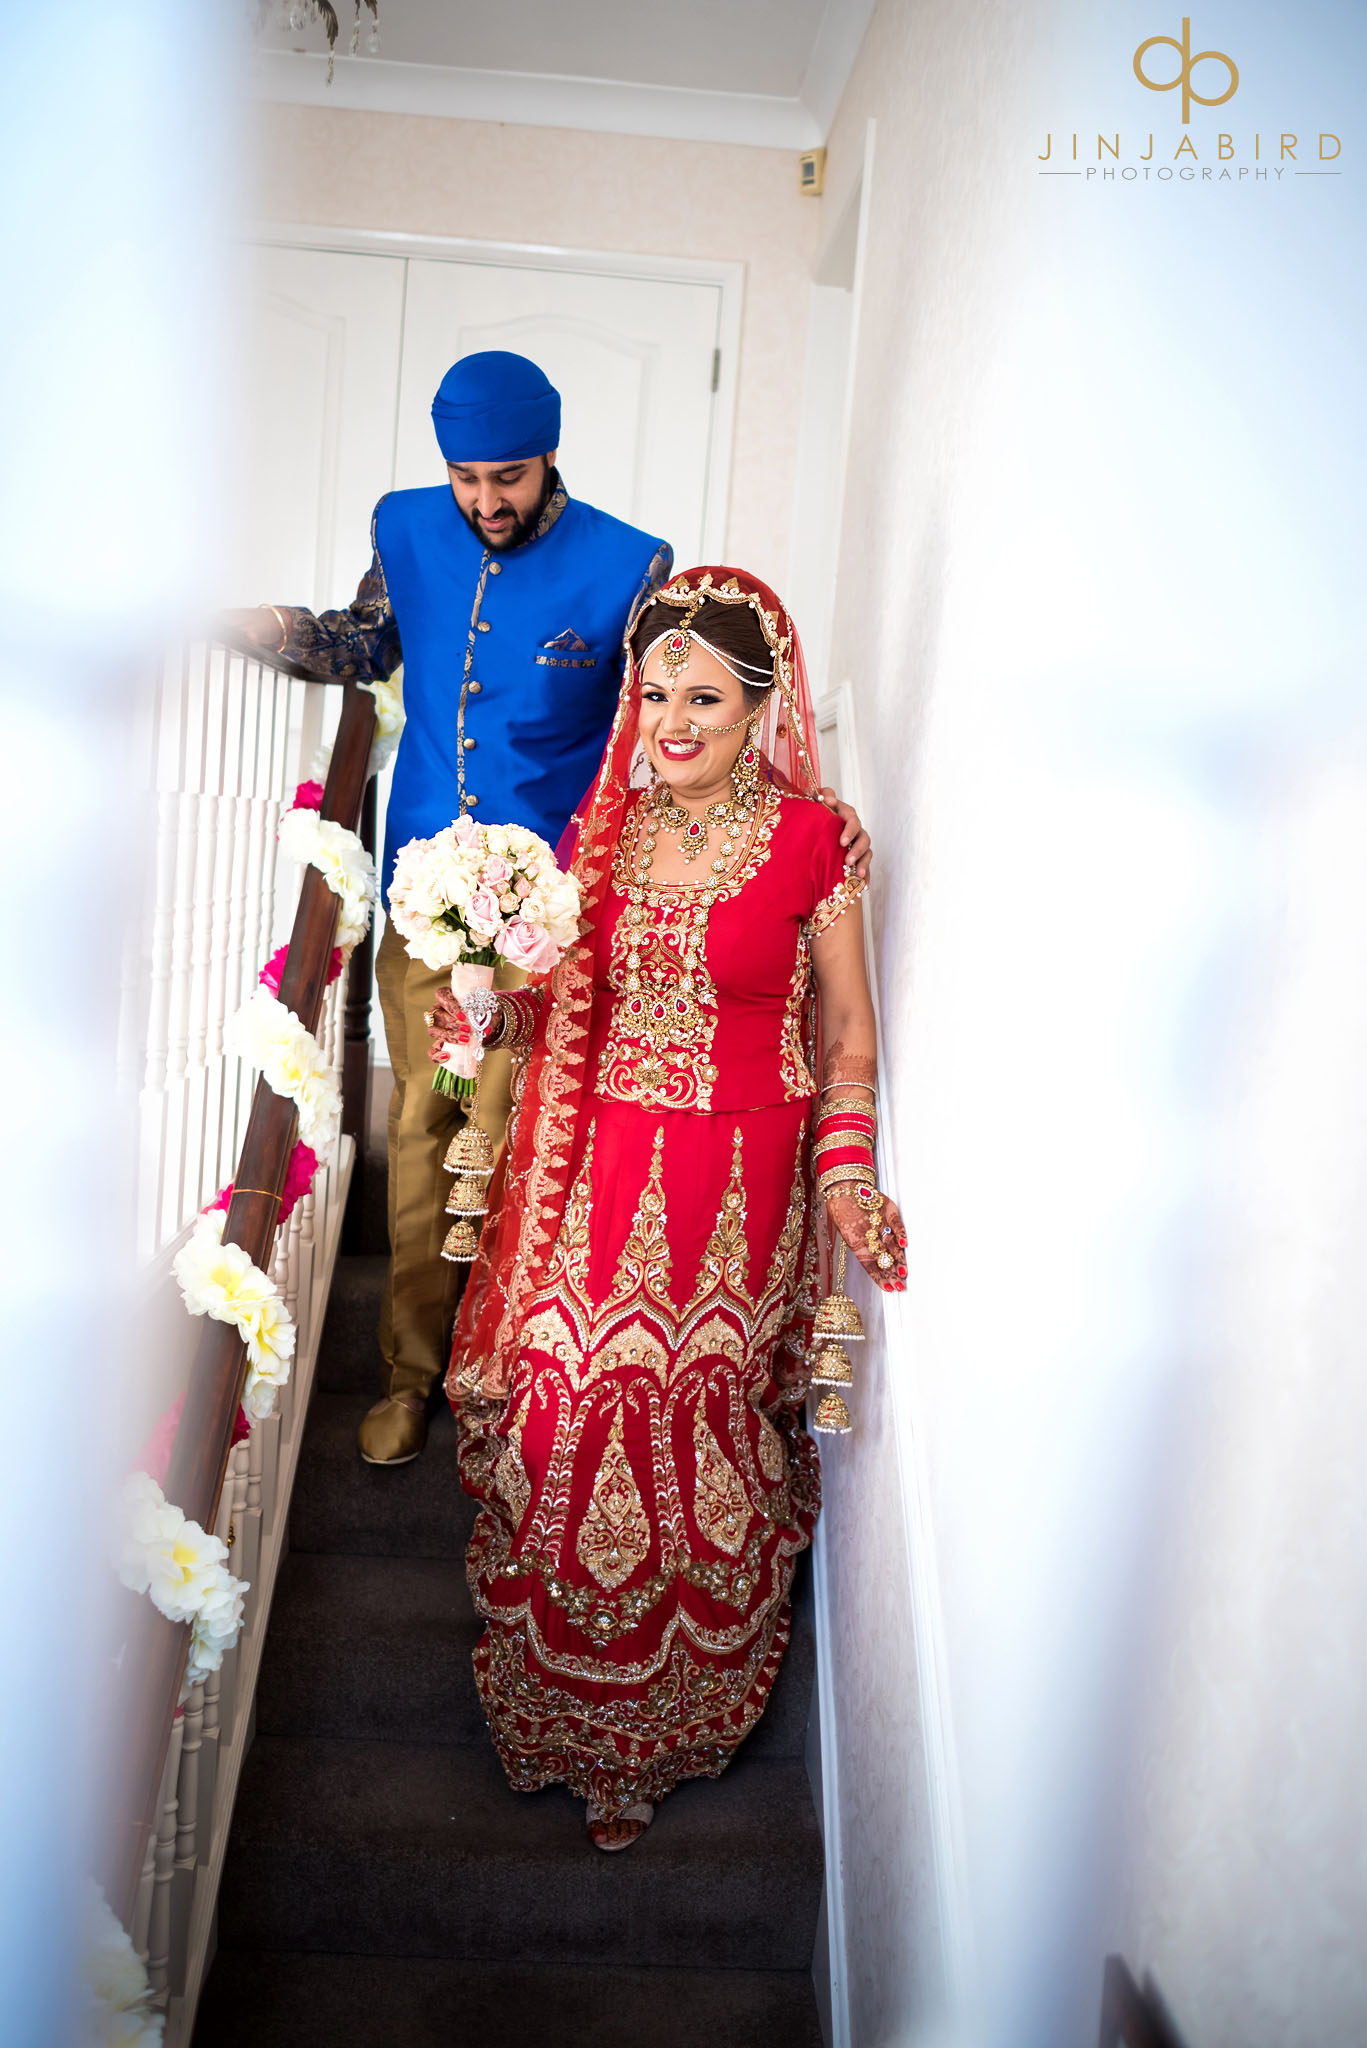 sikh wedding photographer bedfordshire